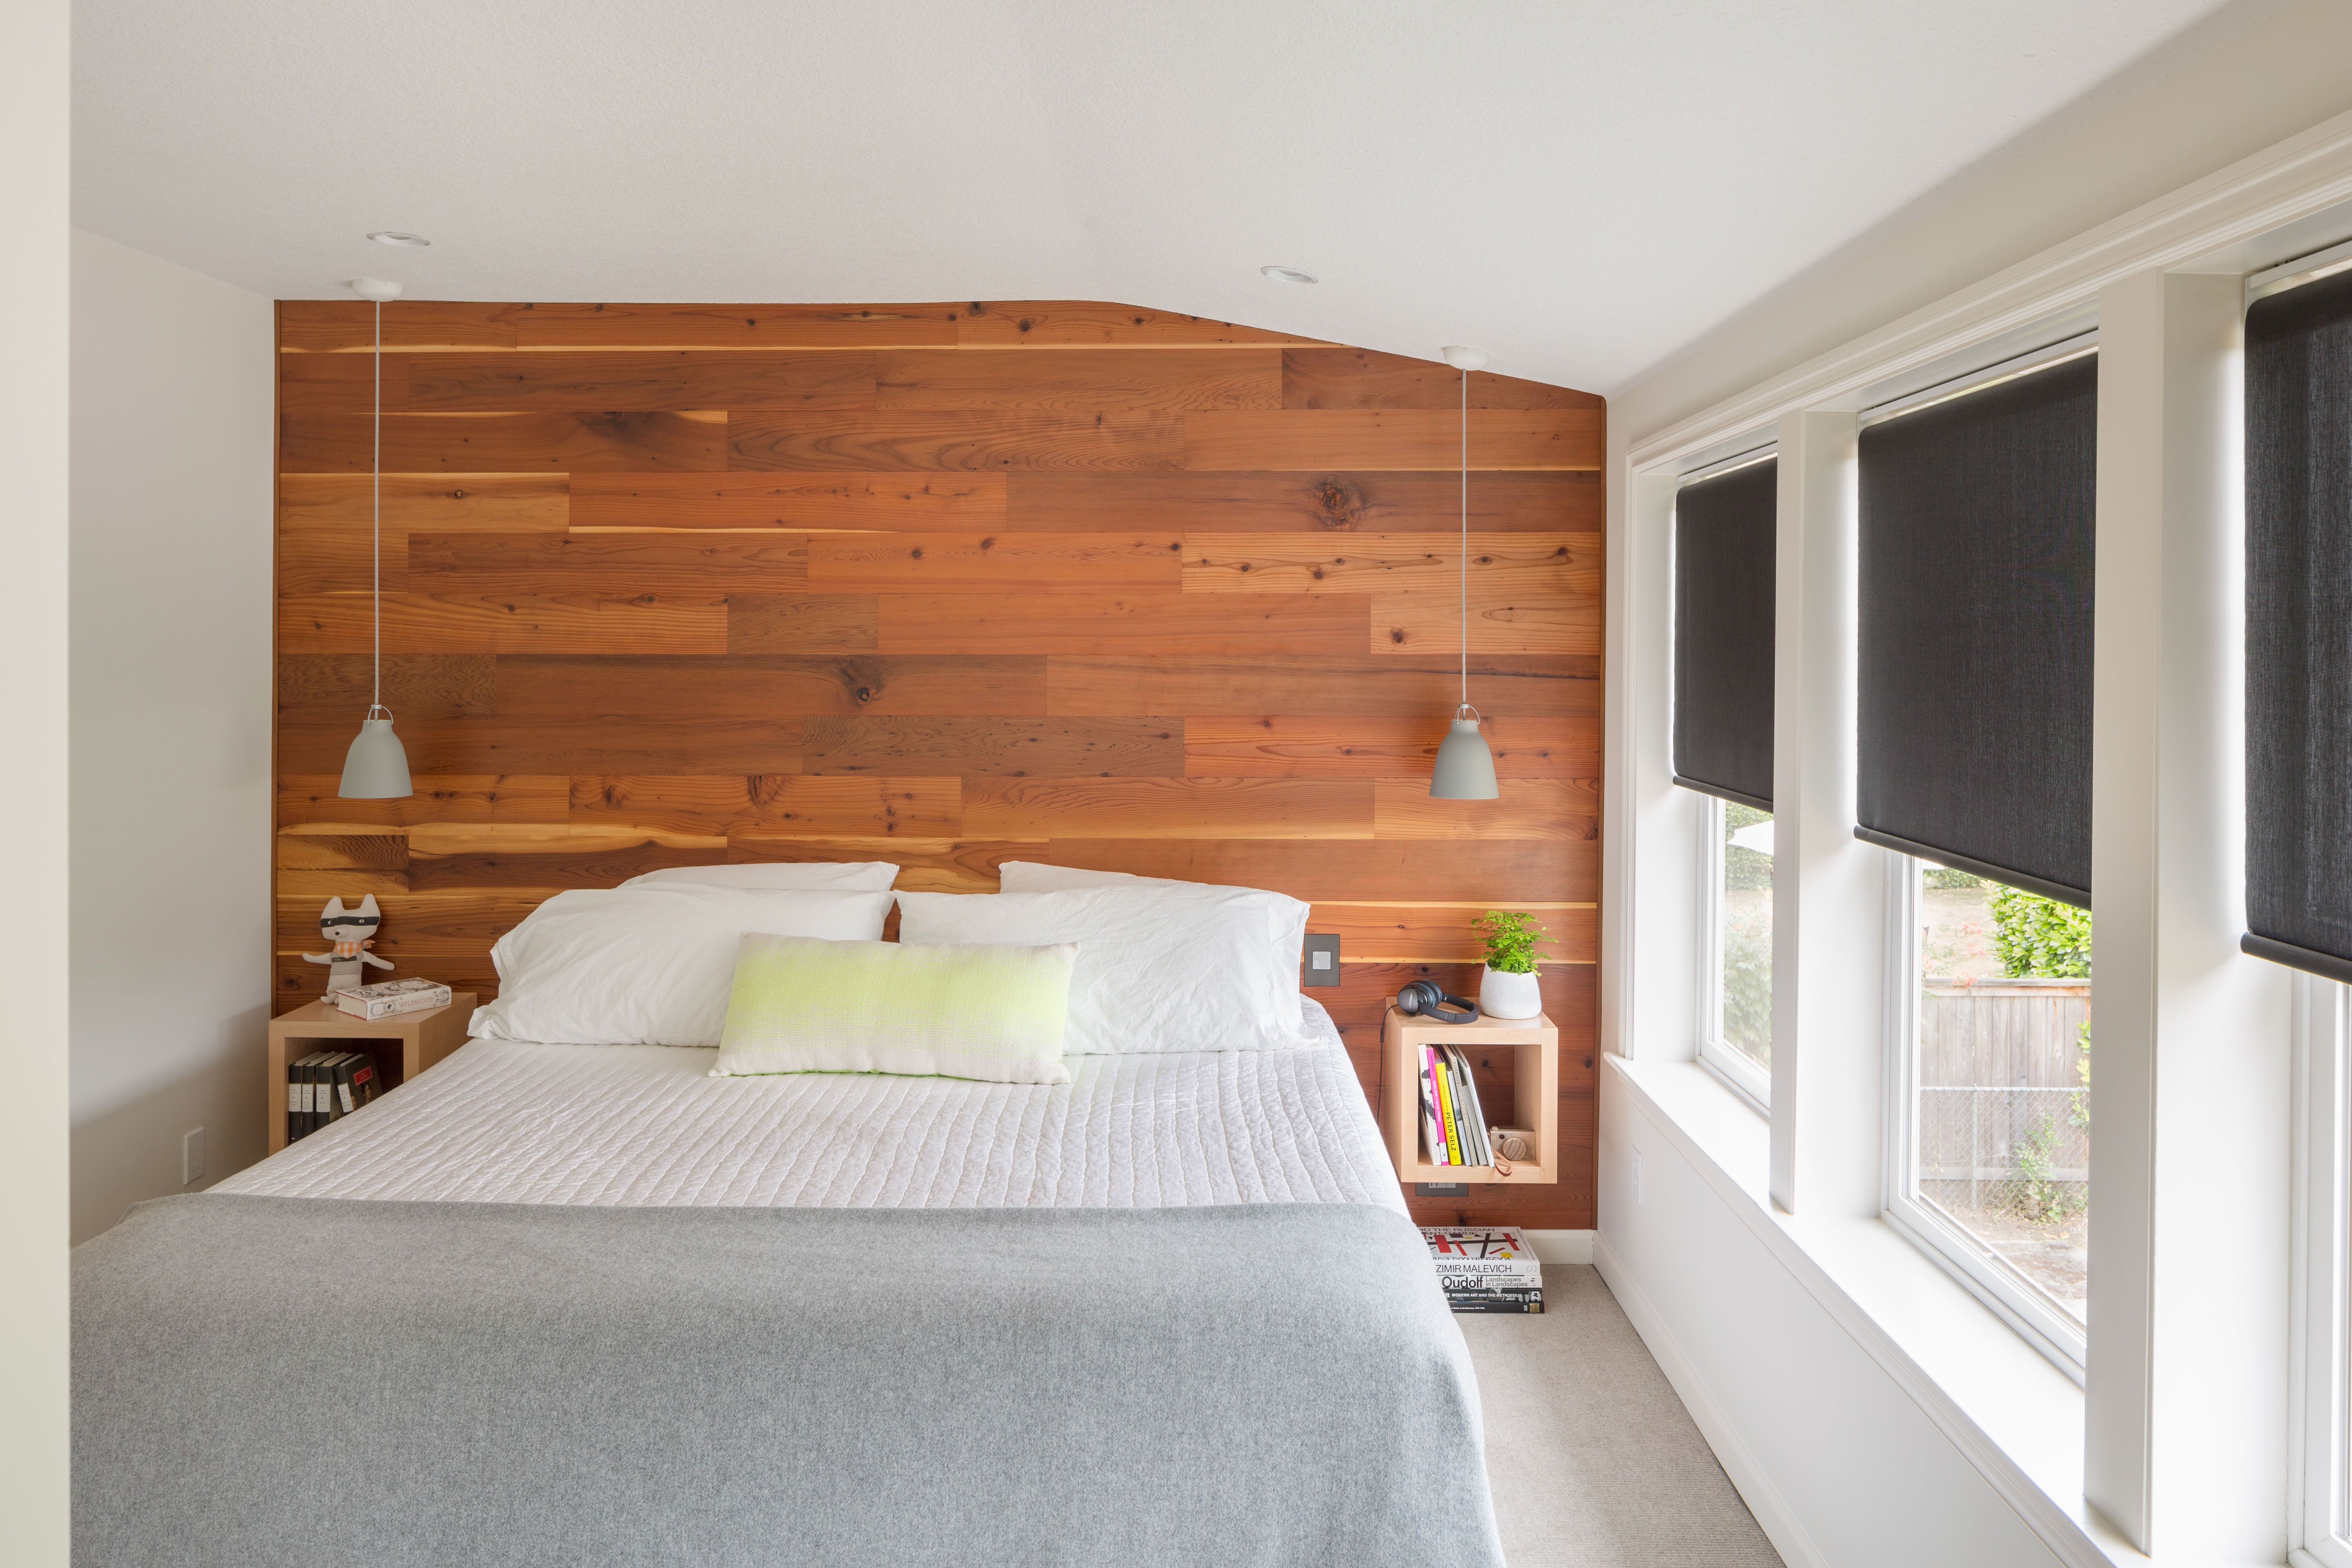 22 Stylish Accent Wall Ideas How To Use Paint Wallpaper Wood Tile For Accent Walls